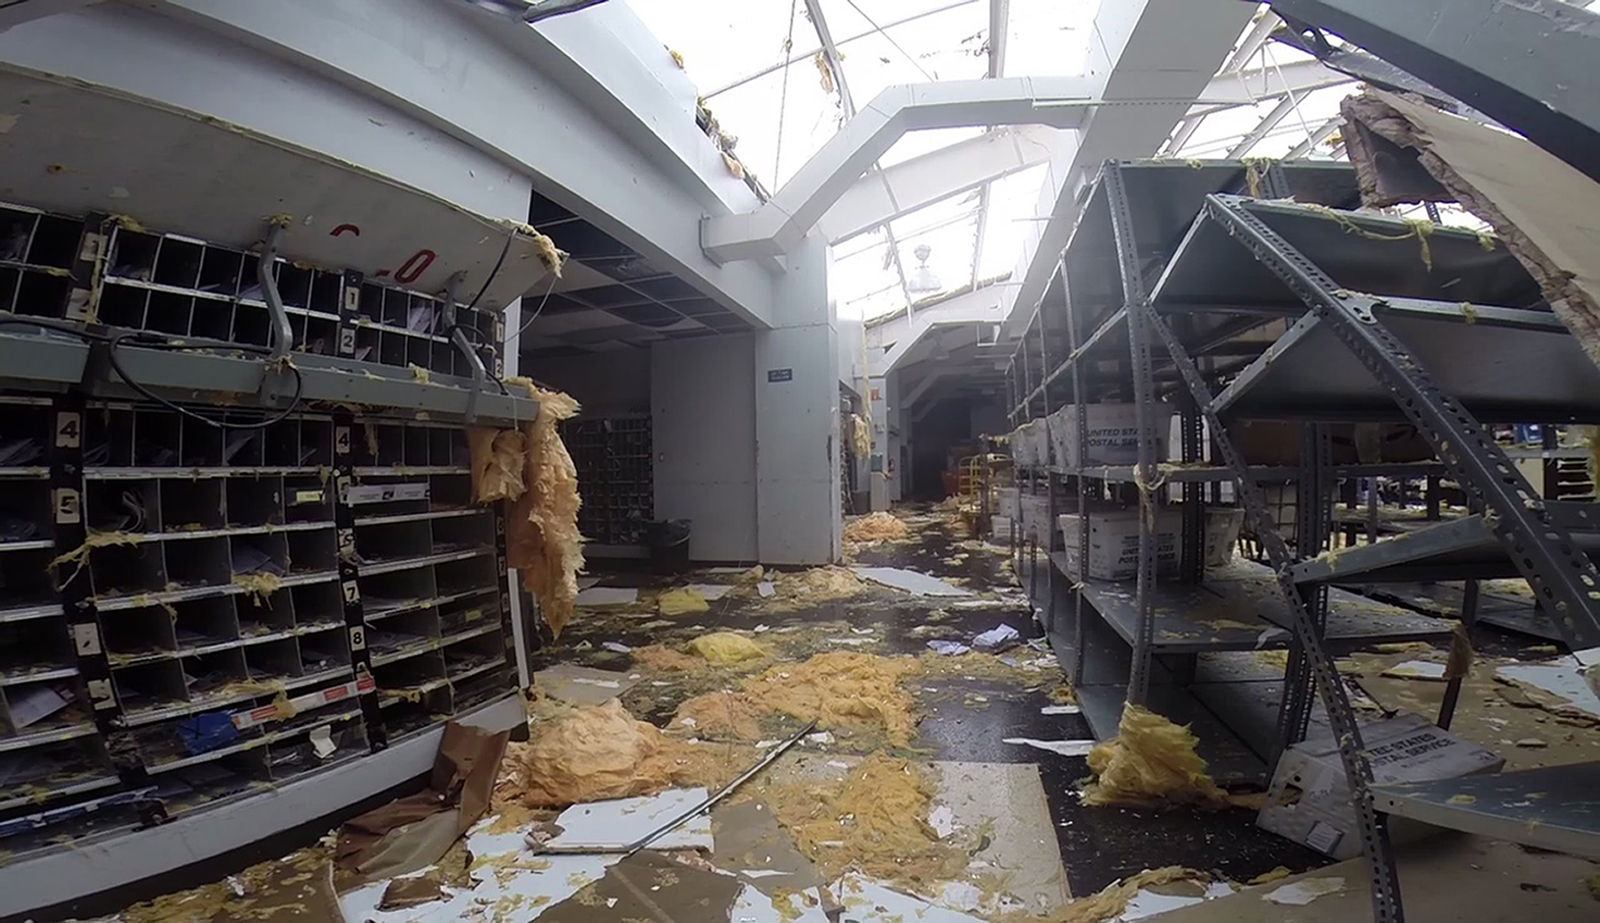 In this image made from video shows a damage to a post office caused by Hurricane Irma in St. Thomas, U.S. Virgin Islands, Thursday, Sept. 7, 2017. Hurricane Irma weakened slightly Thursday with sustained winds of 175 mph, according to the National Hurricane Center. The storm boasted 185 mph winds for a more than 24-hour period, making it the strongest storm ever recorded in the Atlantic Ocean. The storm was expected to arrive in Cuba by Friday. It could hit the Florida mainland by late Saturday, according to hurricane center models. (AP Photo/Ian Brown)